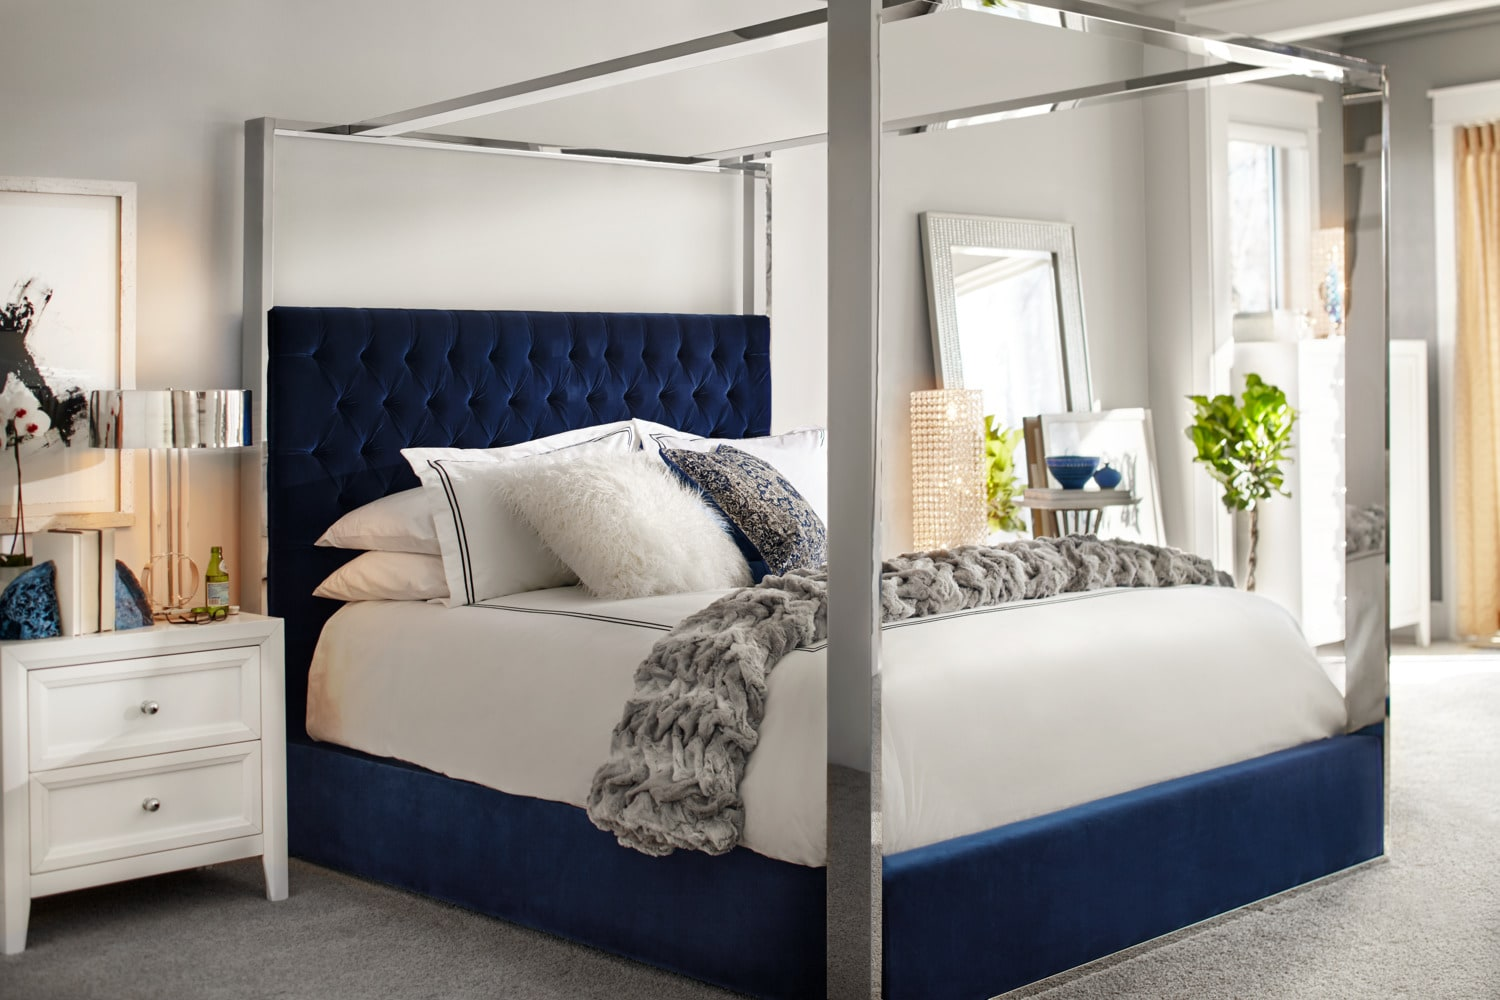 presley king canopy bed - blue | value city furniture and mattresses